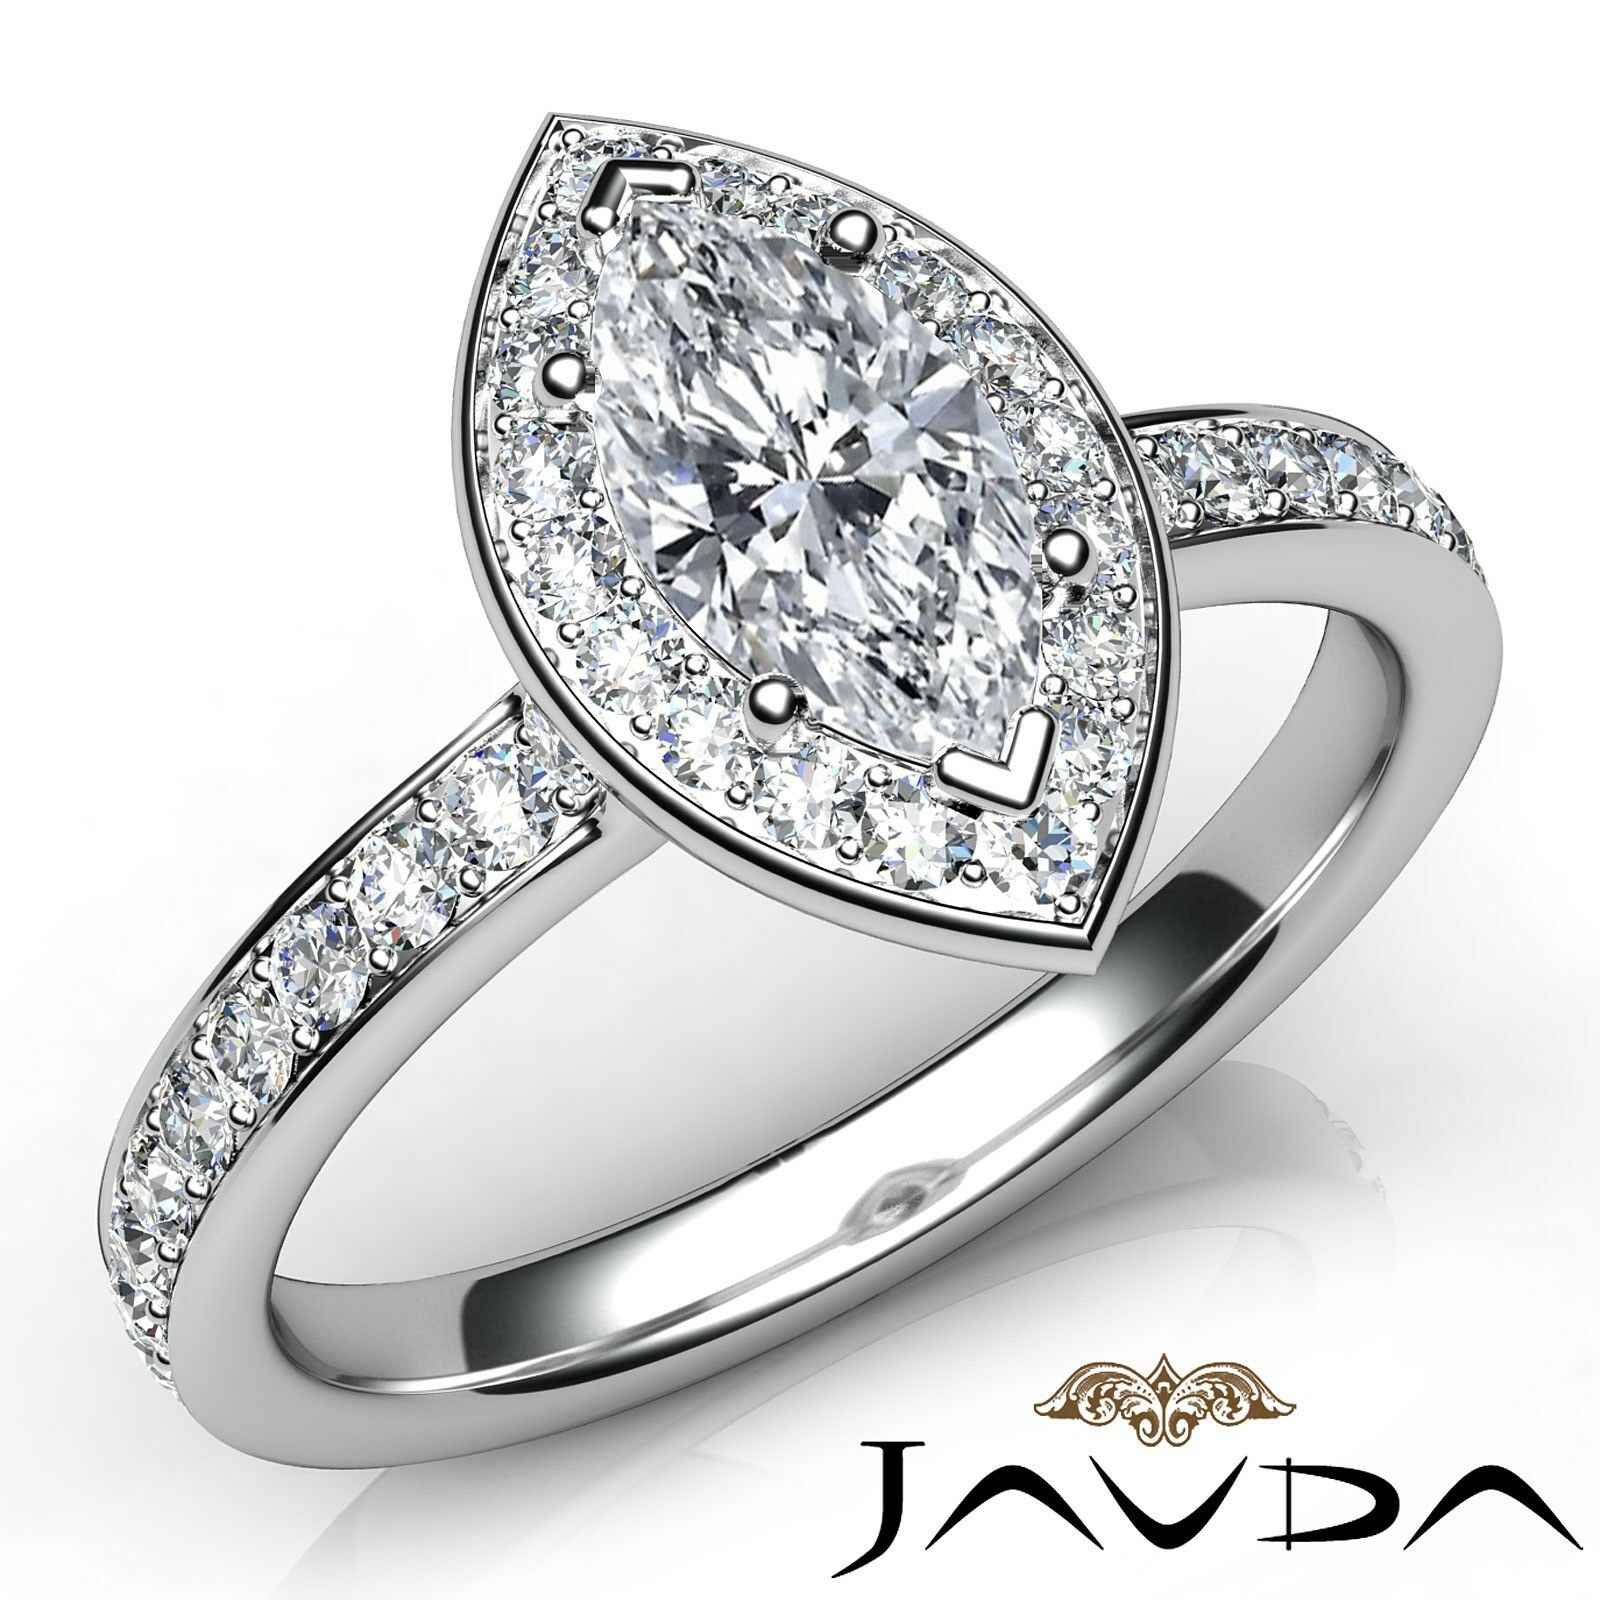 0.95ctw Halo Pave Accent Marquise Diamond Engagement Ring GIA E-VS2 White Gold